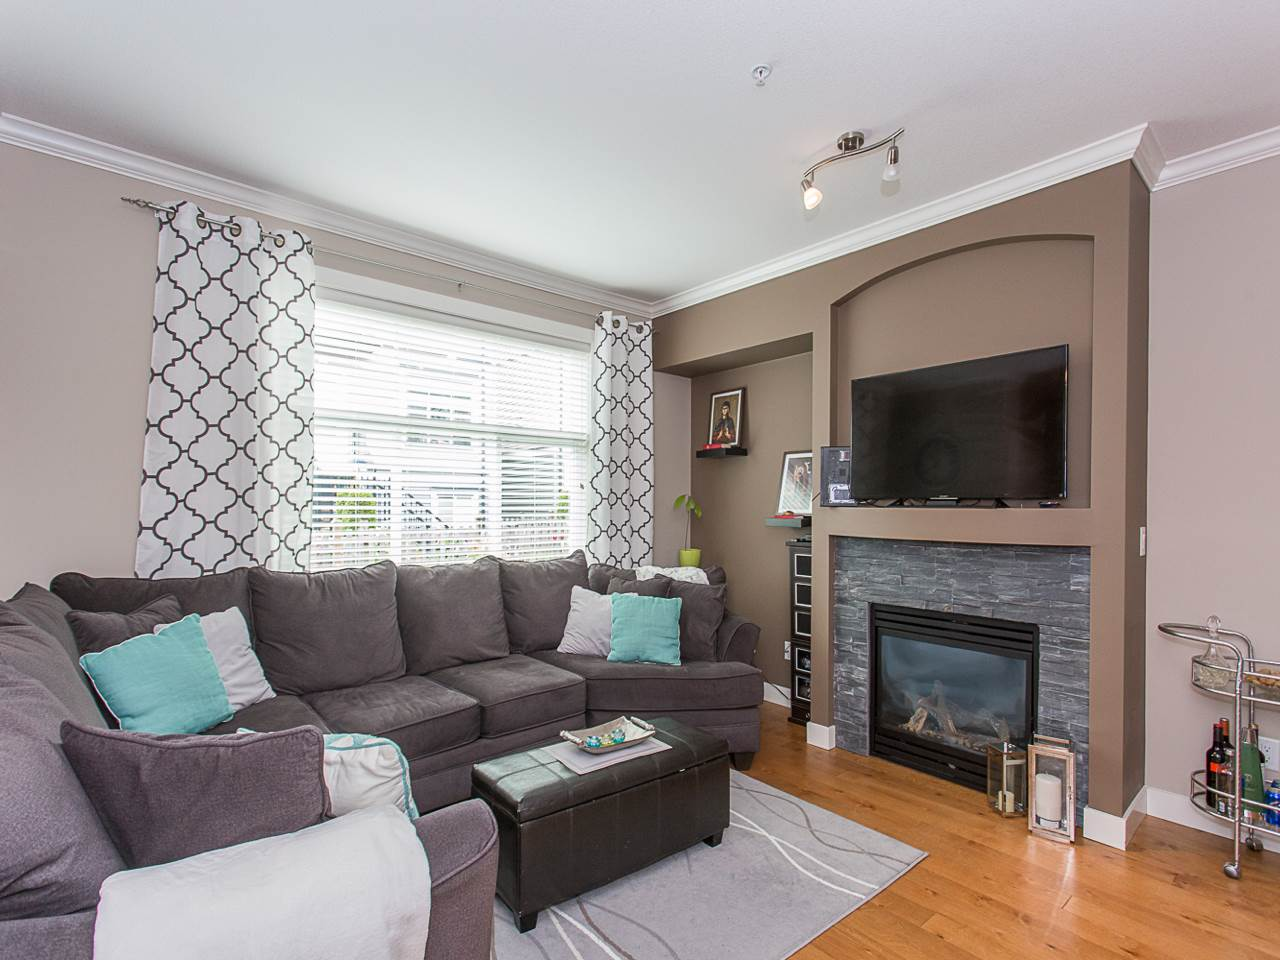 "Photo 8: 59 11252 COTTONWOOD Drive in Maple Ridge: Cottonwood MR Townhouse for sale in ""COTTONWOOD RIDGE"" : MLS(r) # R2179258"